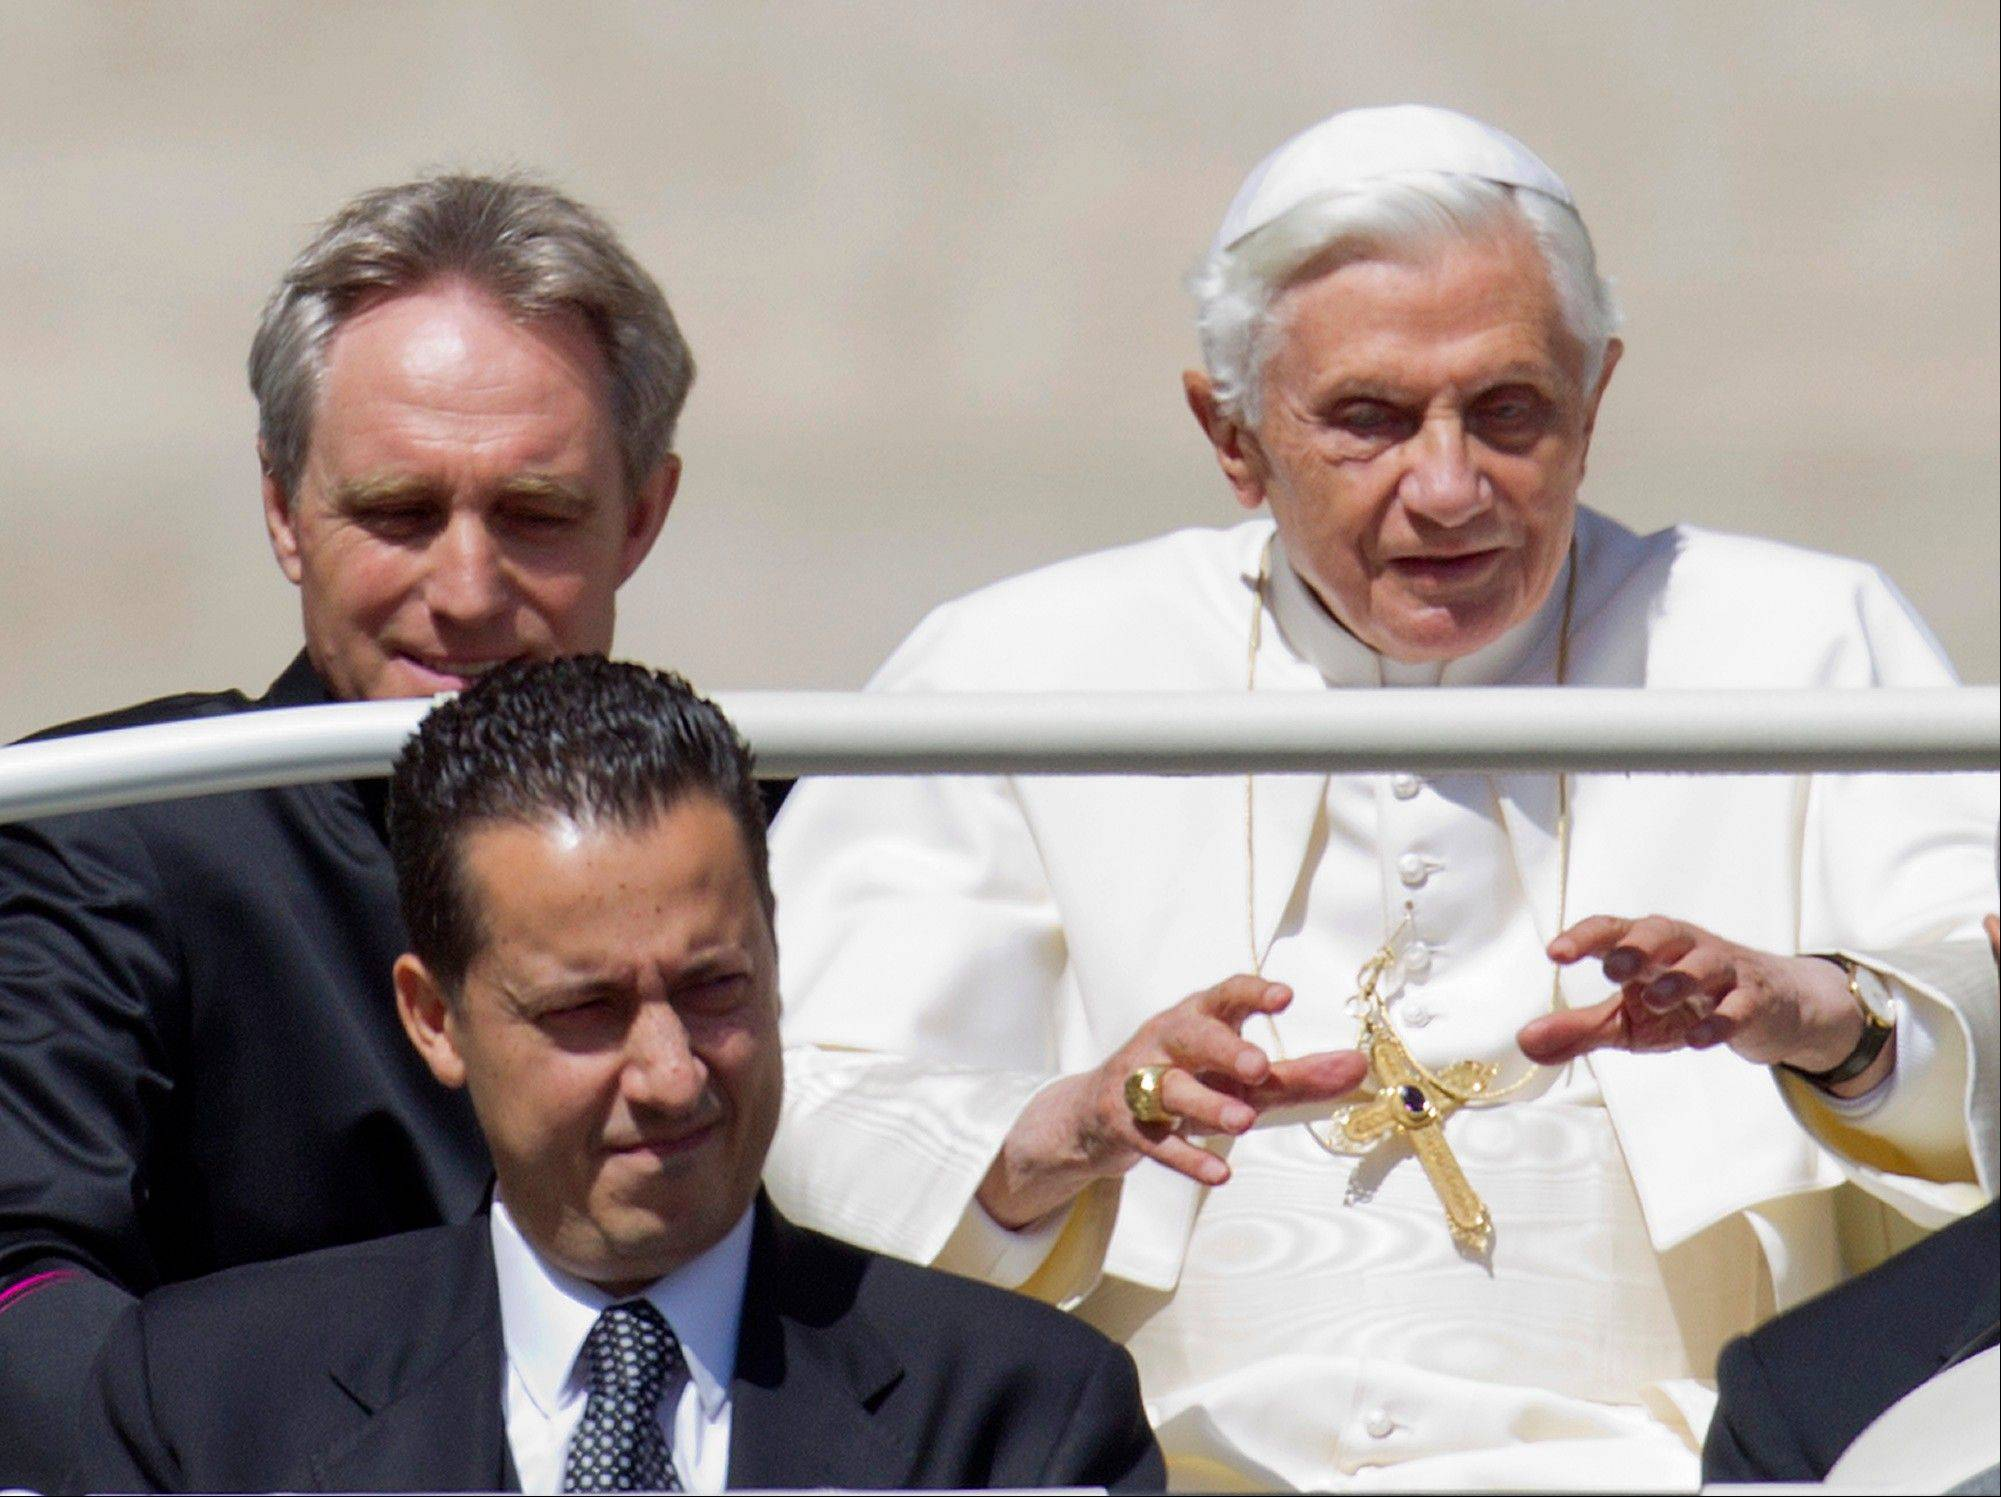 In this May photo, Pope Benedict XVI, flanked by his private secretary Georg Gaenswein, top left, and his butler Paolo Gabiele arrives at St. Peter's square. A three-judge Vatican tribunal on Saturday will decide whether Paolo Gabriele is guilty of aggravated theft, accused of stealing the pope's private papers and leaking them to journalist Gianluigi Nuzzi.